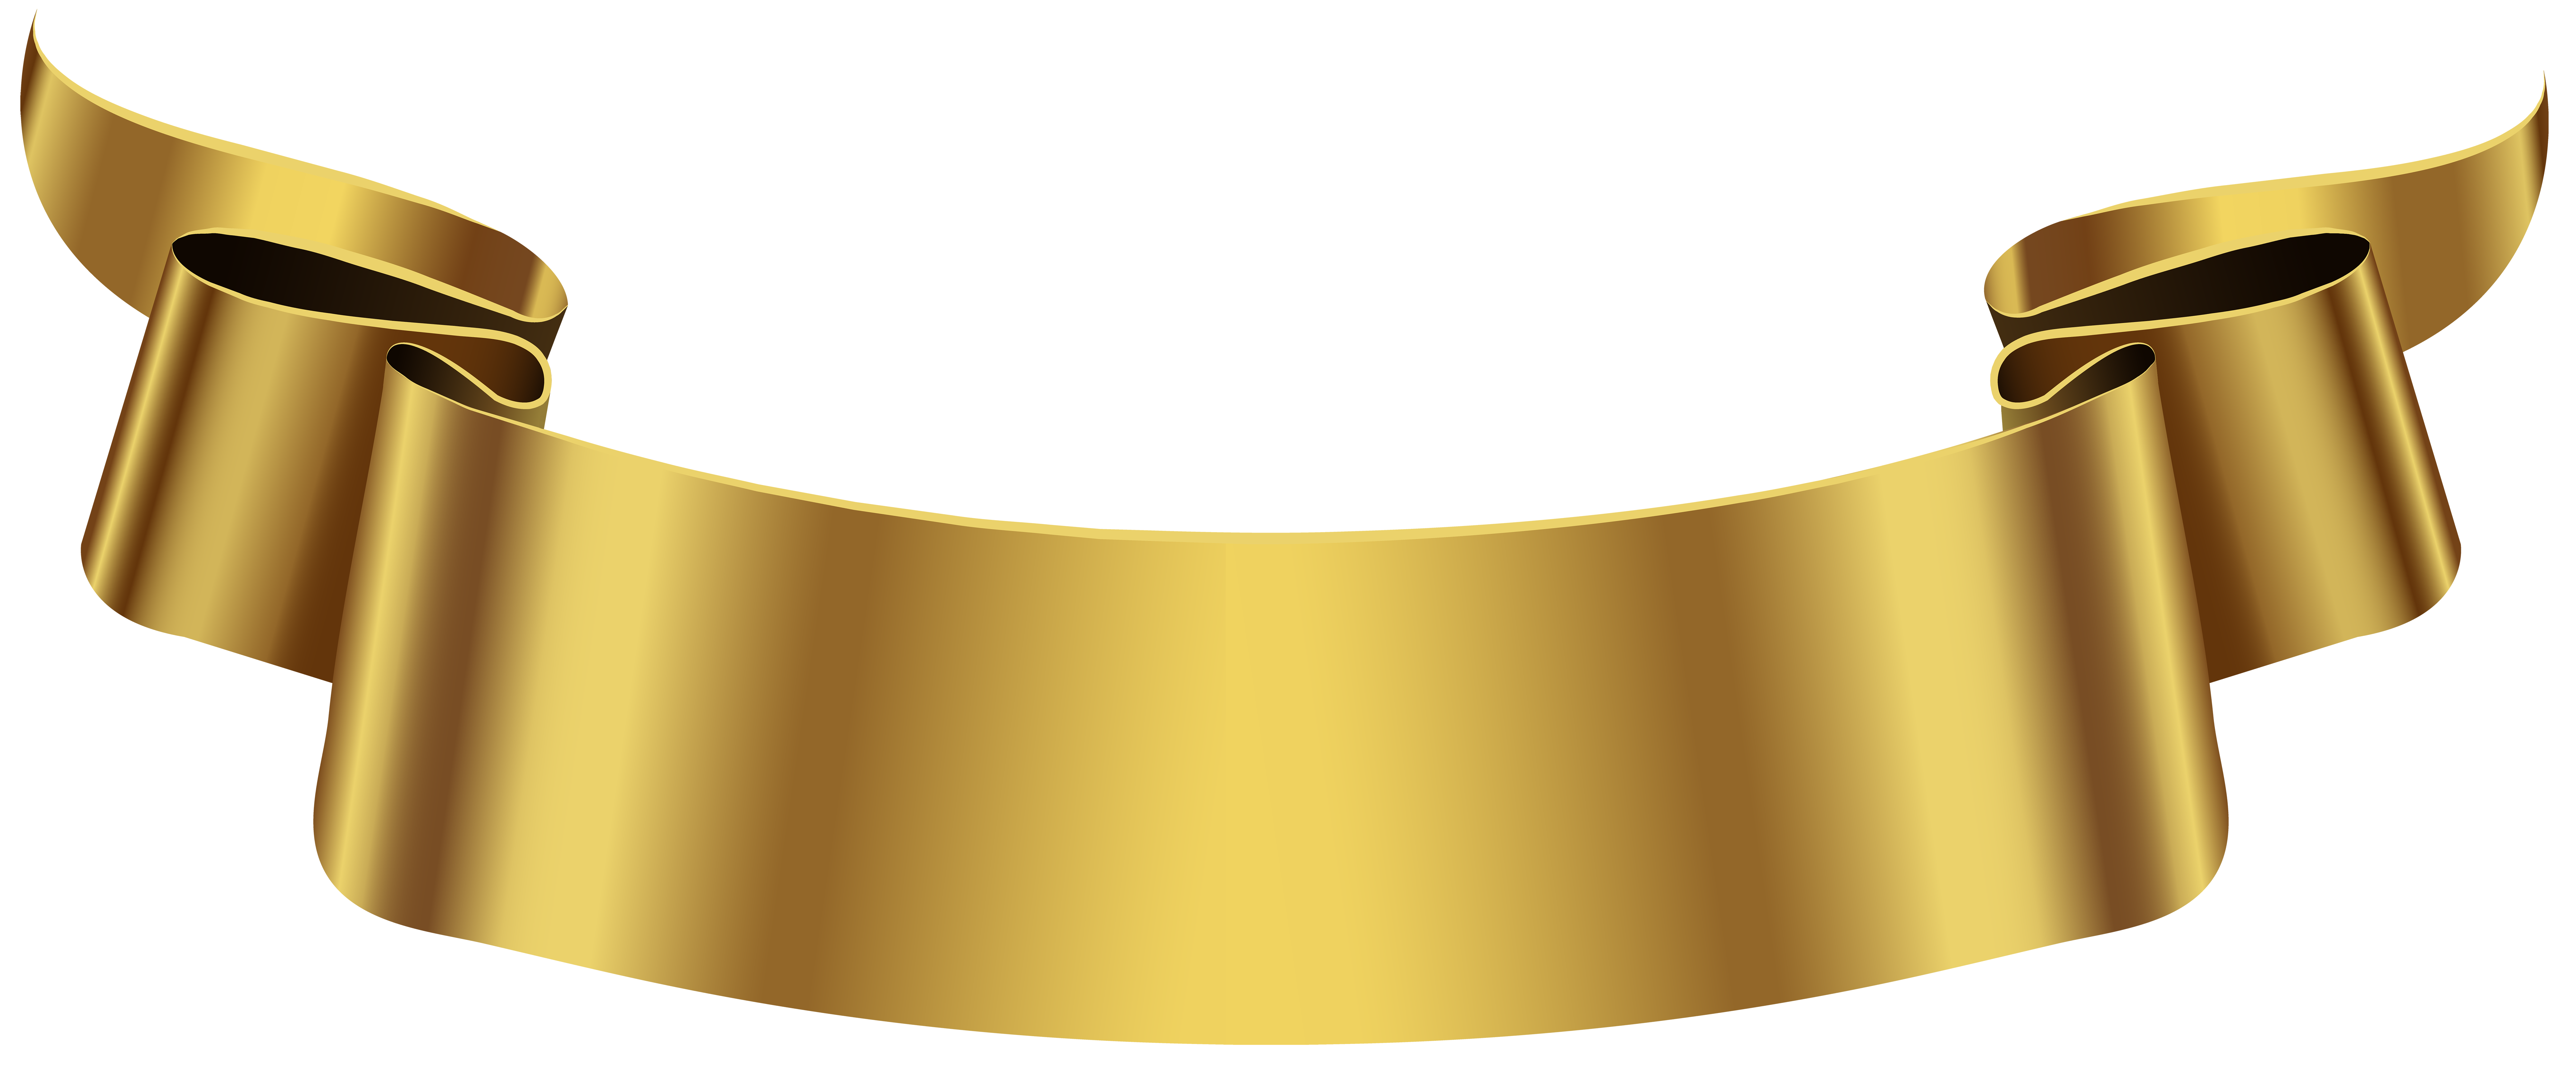 Golden Banner Transparent Png Clip Art Image Gallery Yopriceville High Quality Images And Transparent Png Free Cli Banner Clip Art Logo Gallery Ribbon Png